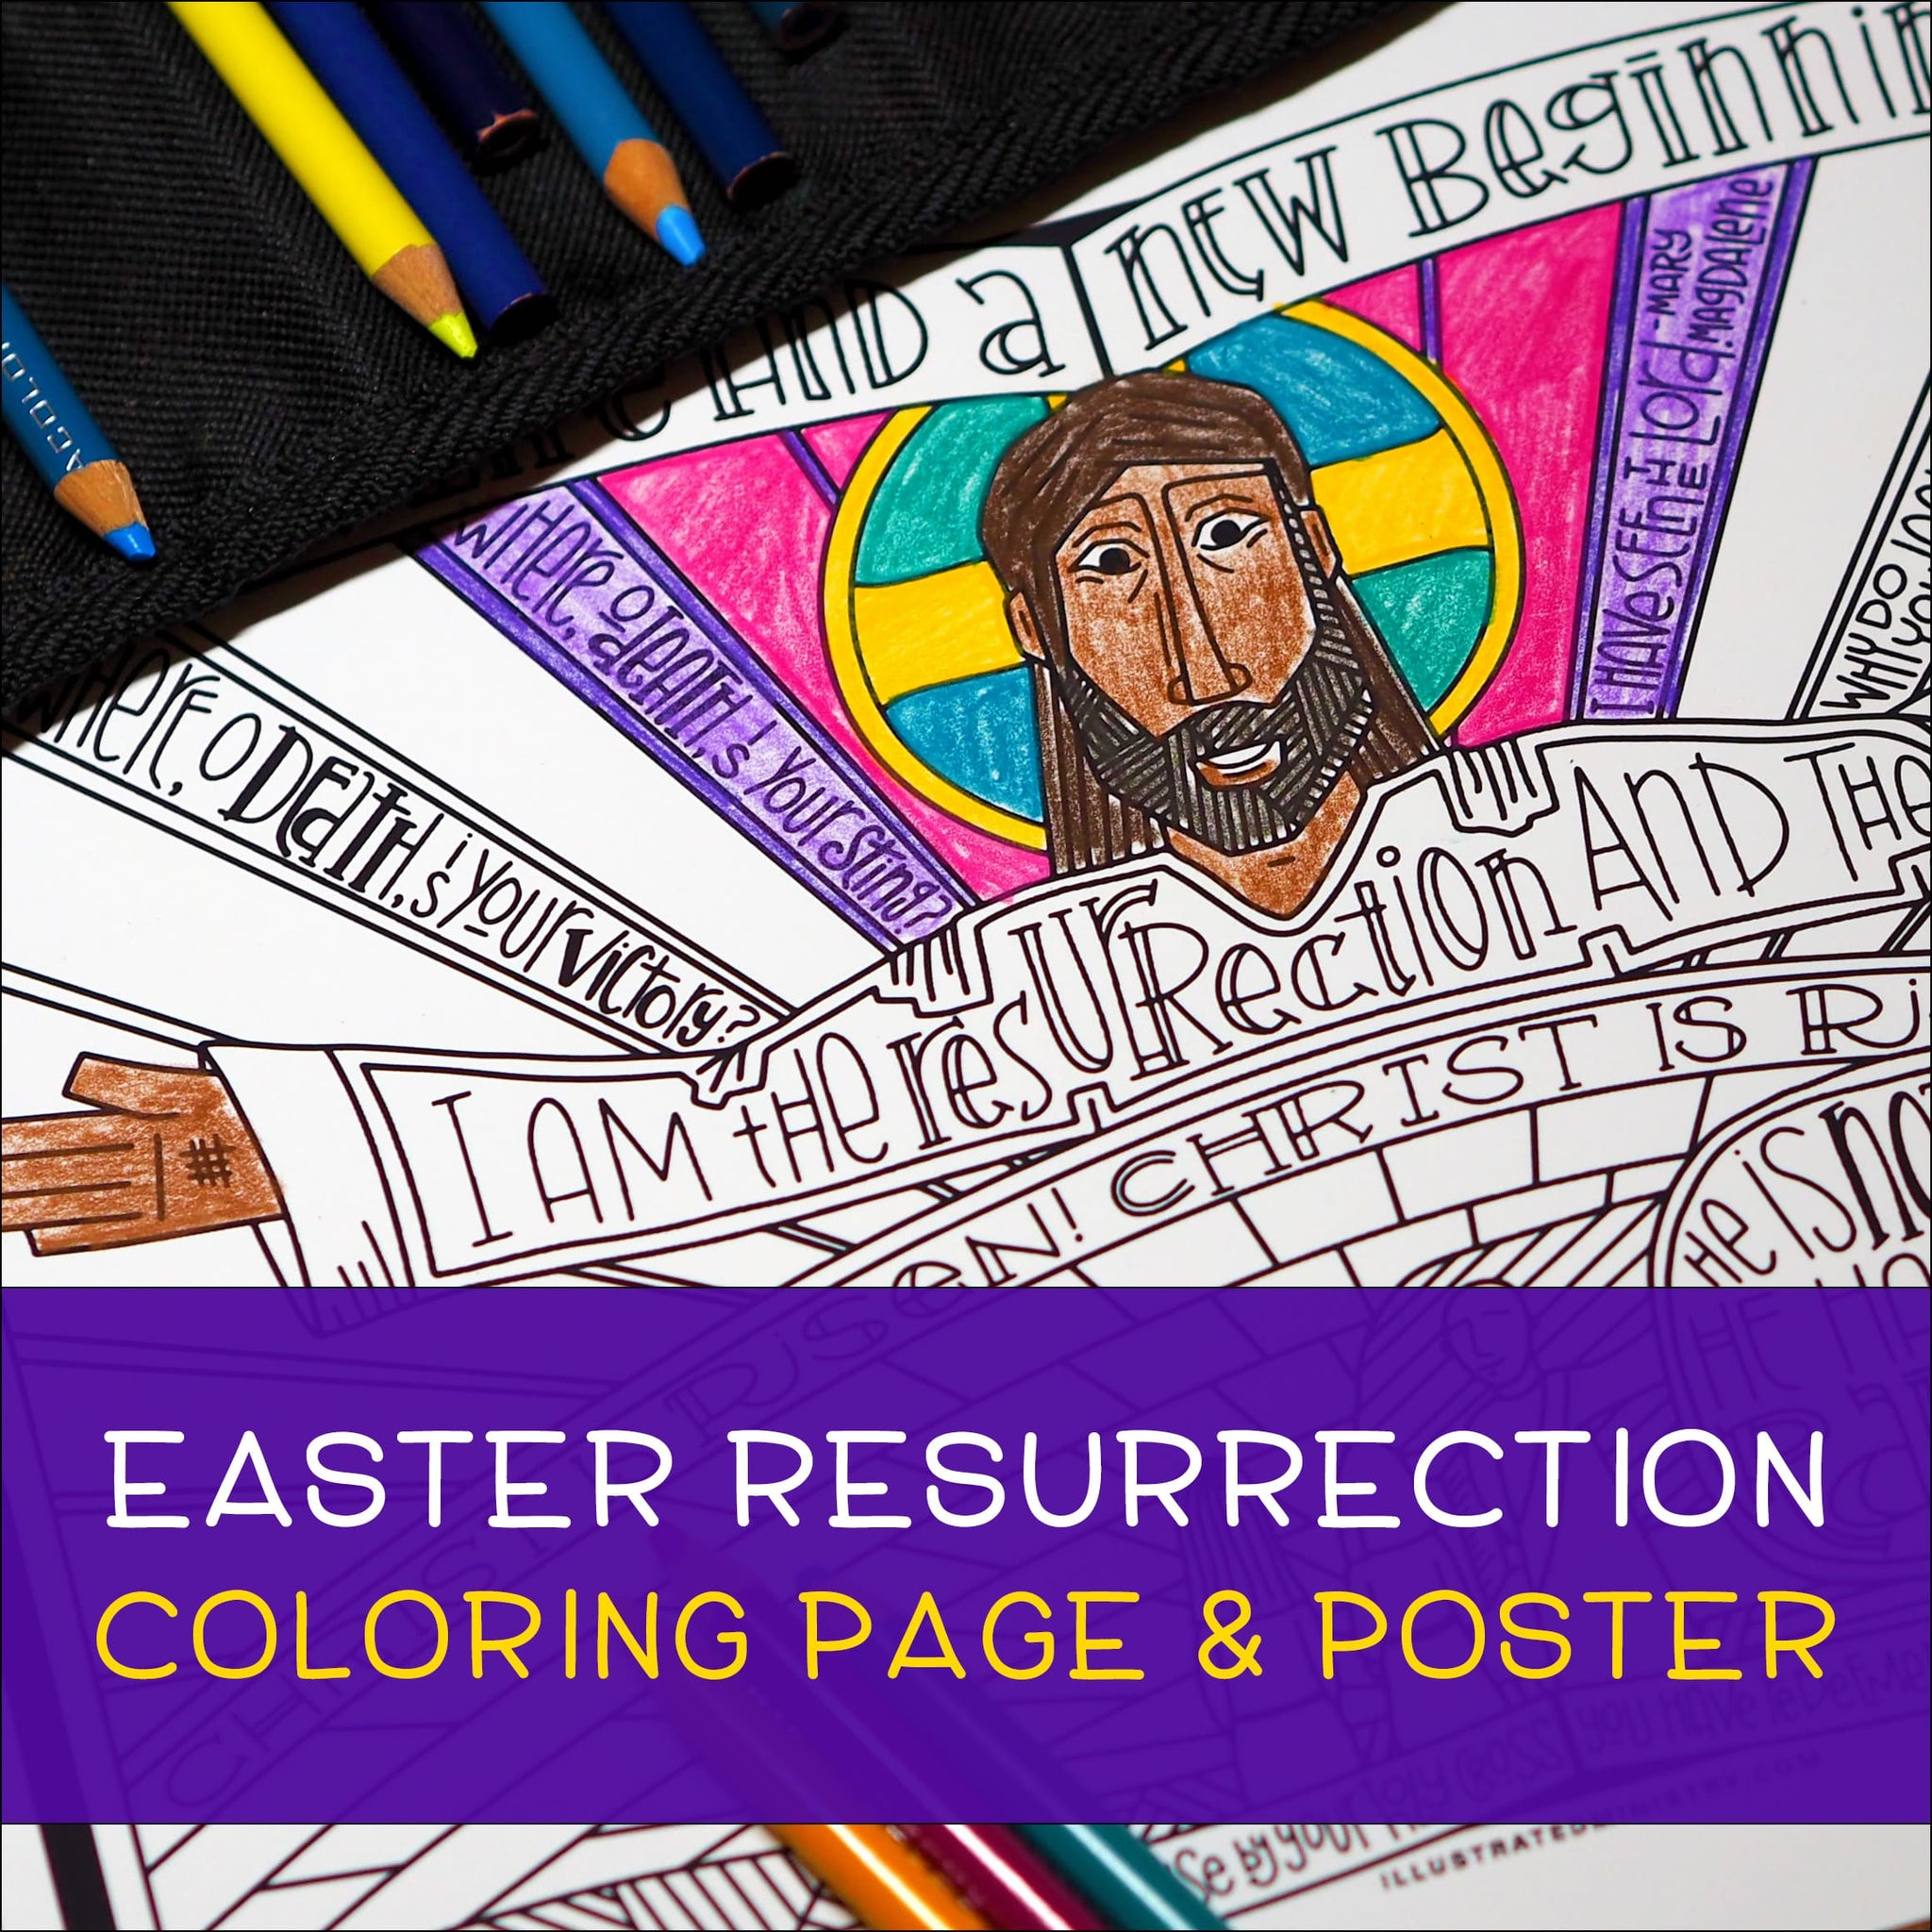 Easter Resurrection Coloring Page & Poster